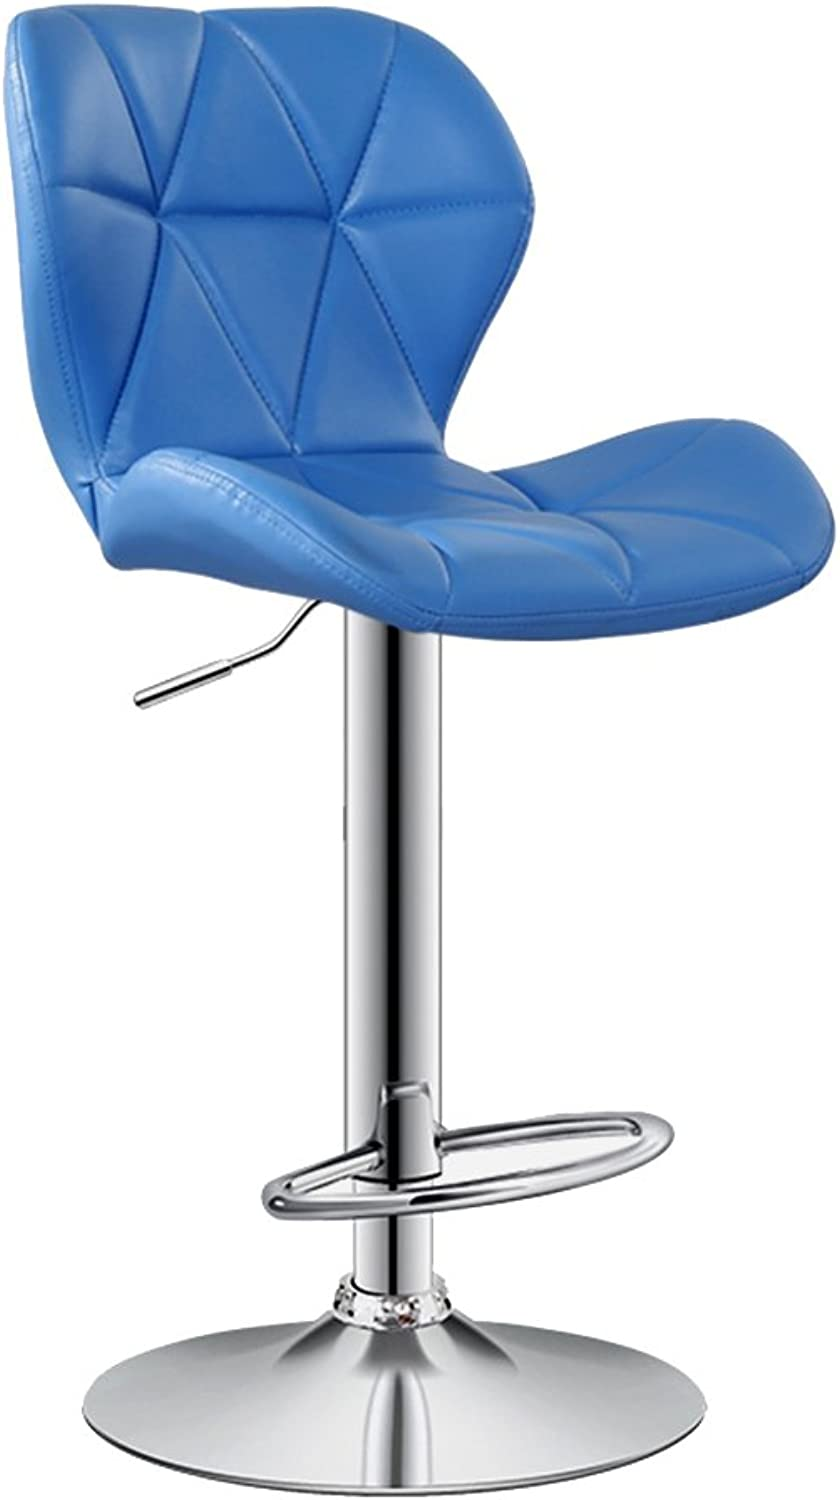 Bar Chair Leather Chairs High Chairs Lift Chairs Backrest Swivel Chairs (color   bluee, Size   42  38.5  60cm)